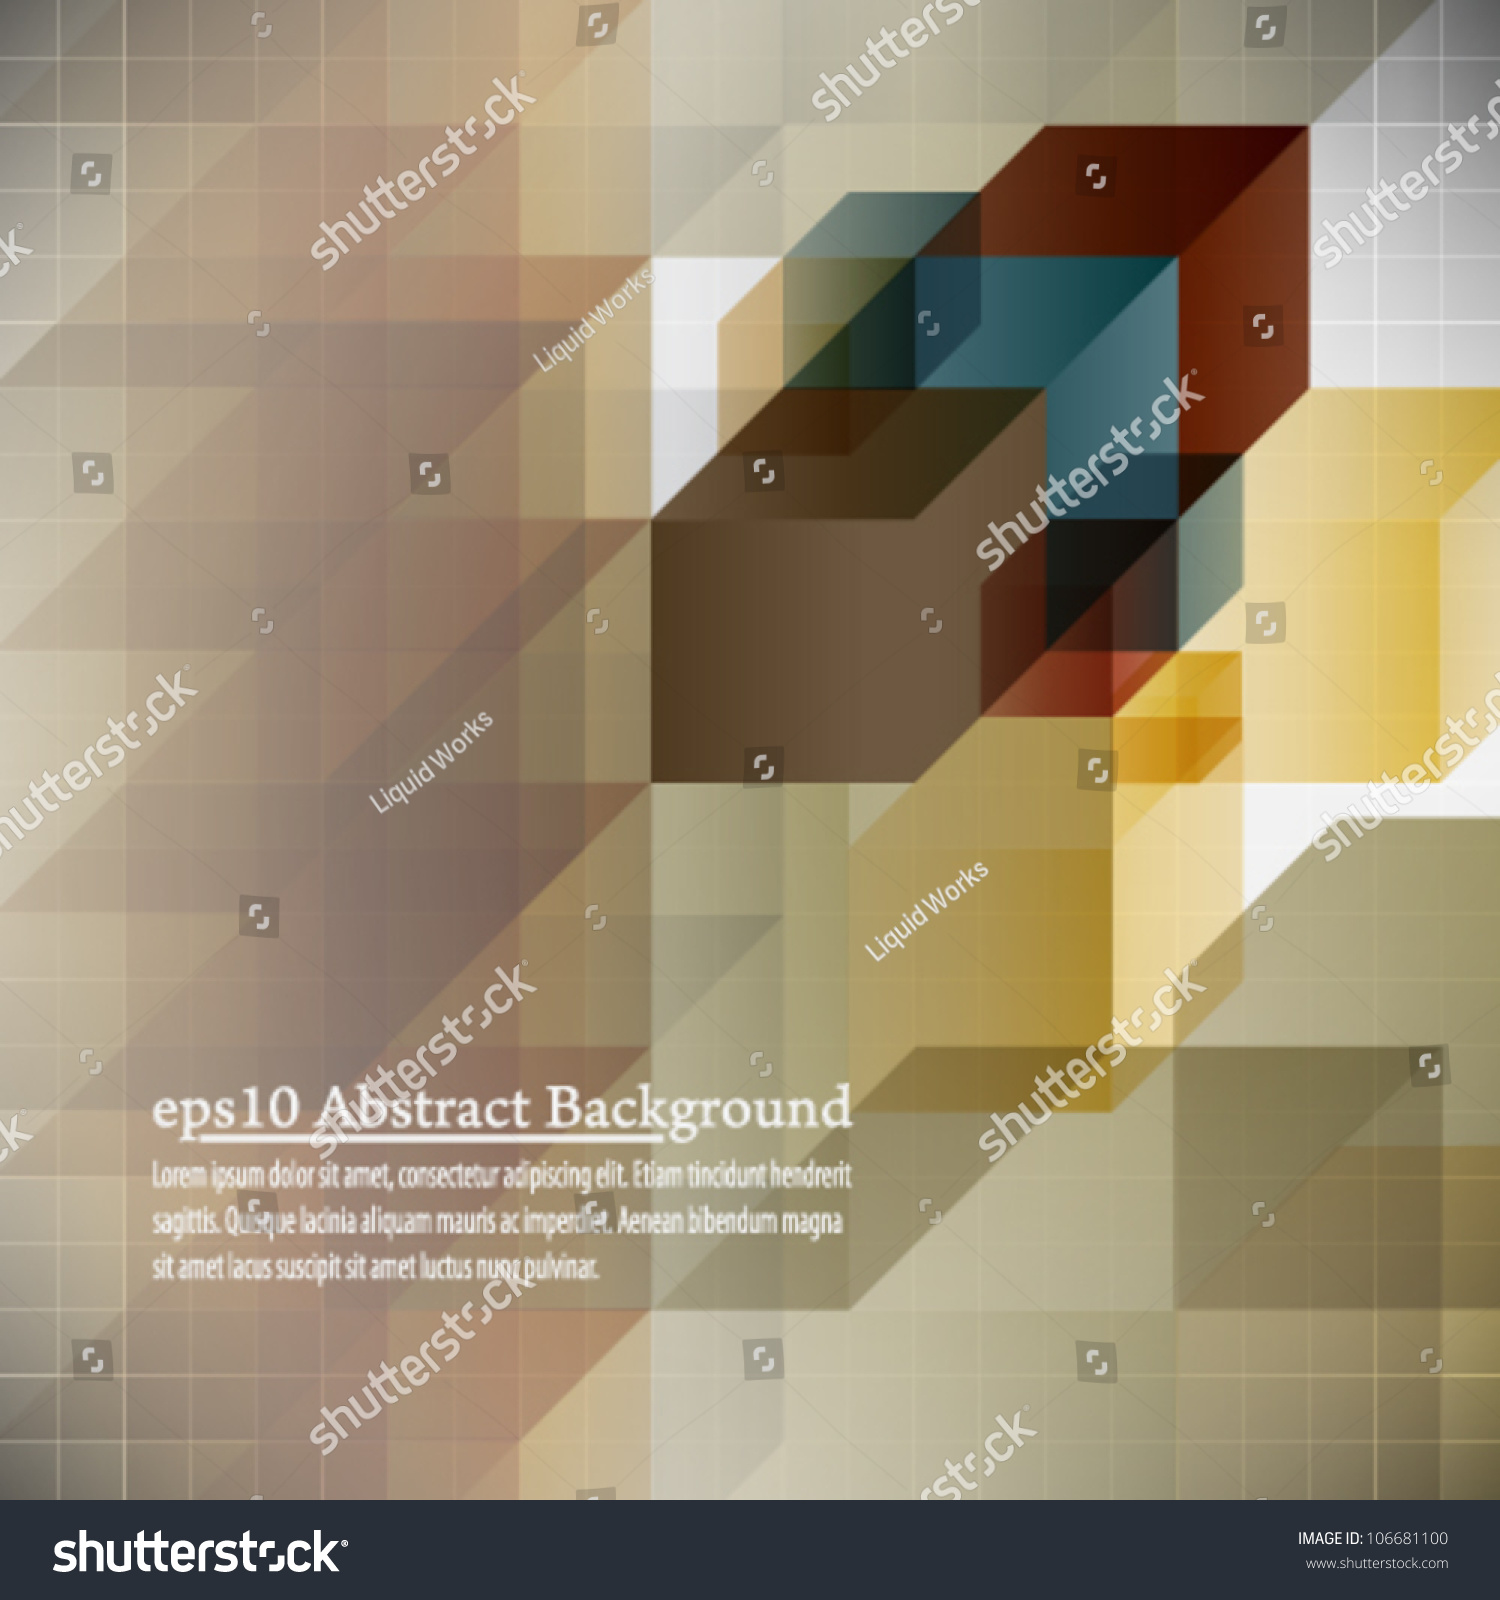 Book Cover Design Abstract : Eps abstract background book cover design stock vector